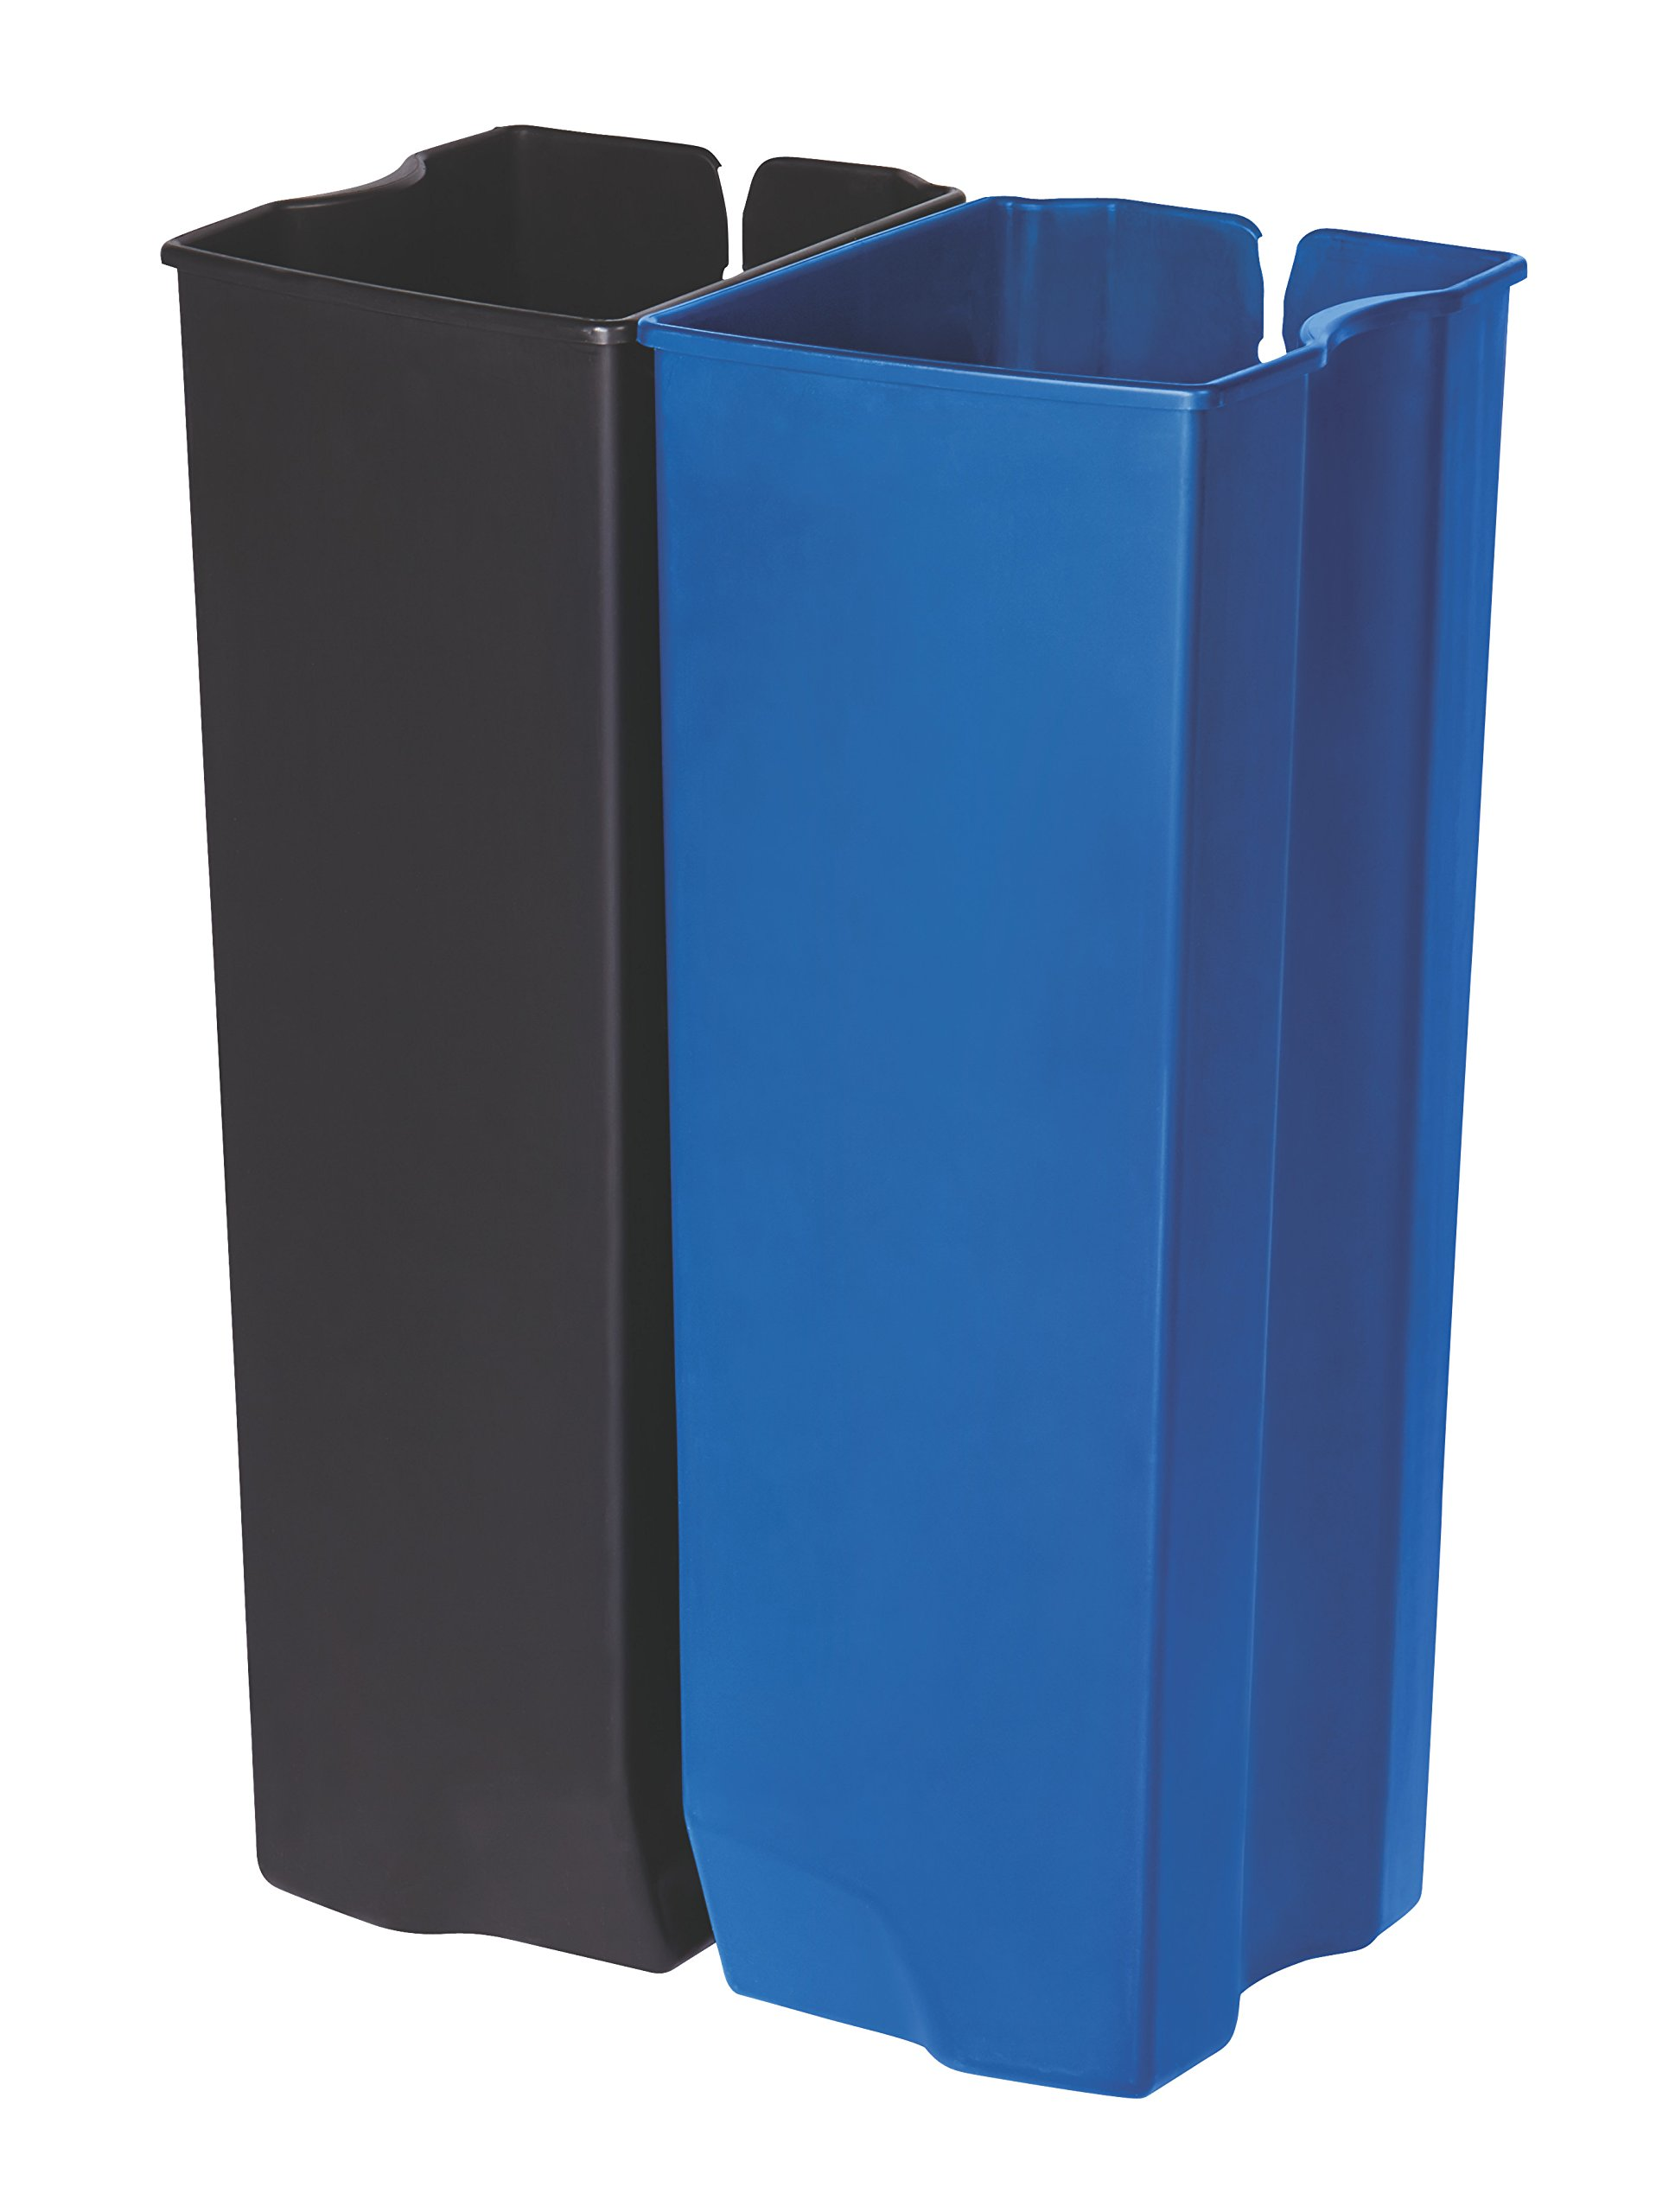 Rubbermaid Commercial Slim Jim End Step-On Trash Dual Rigid Liner Set, Plastic, 13 Gallon, Black/Blue by Rubbermaid Commercial Products